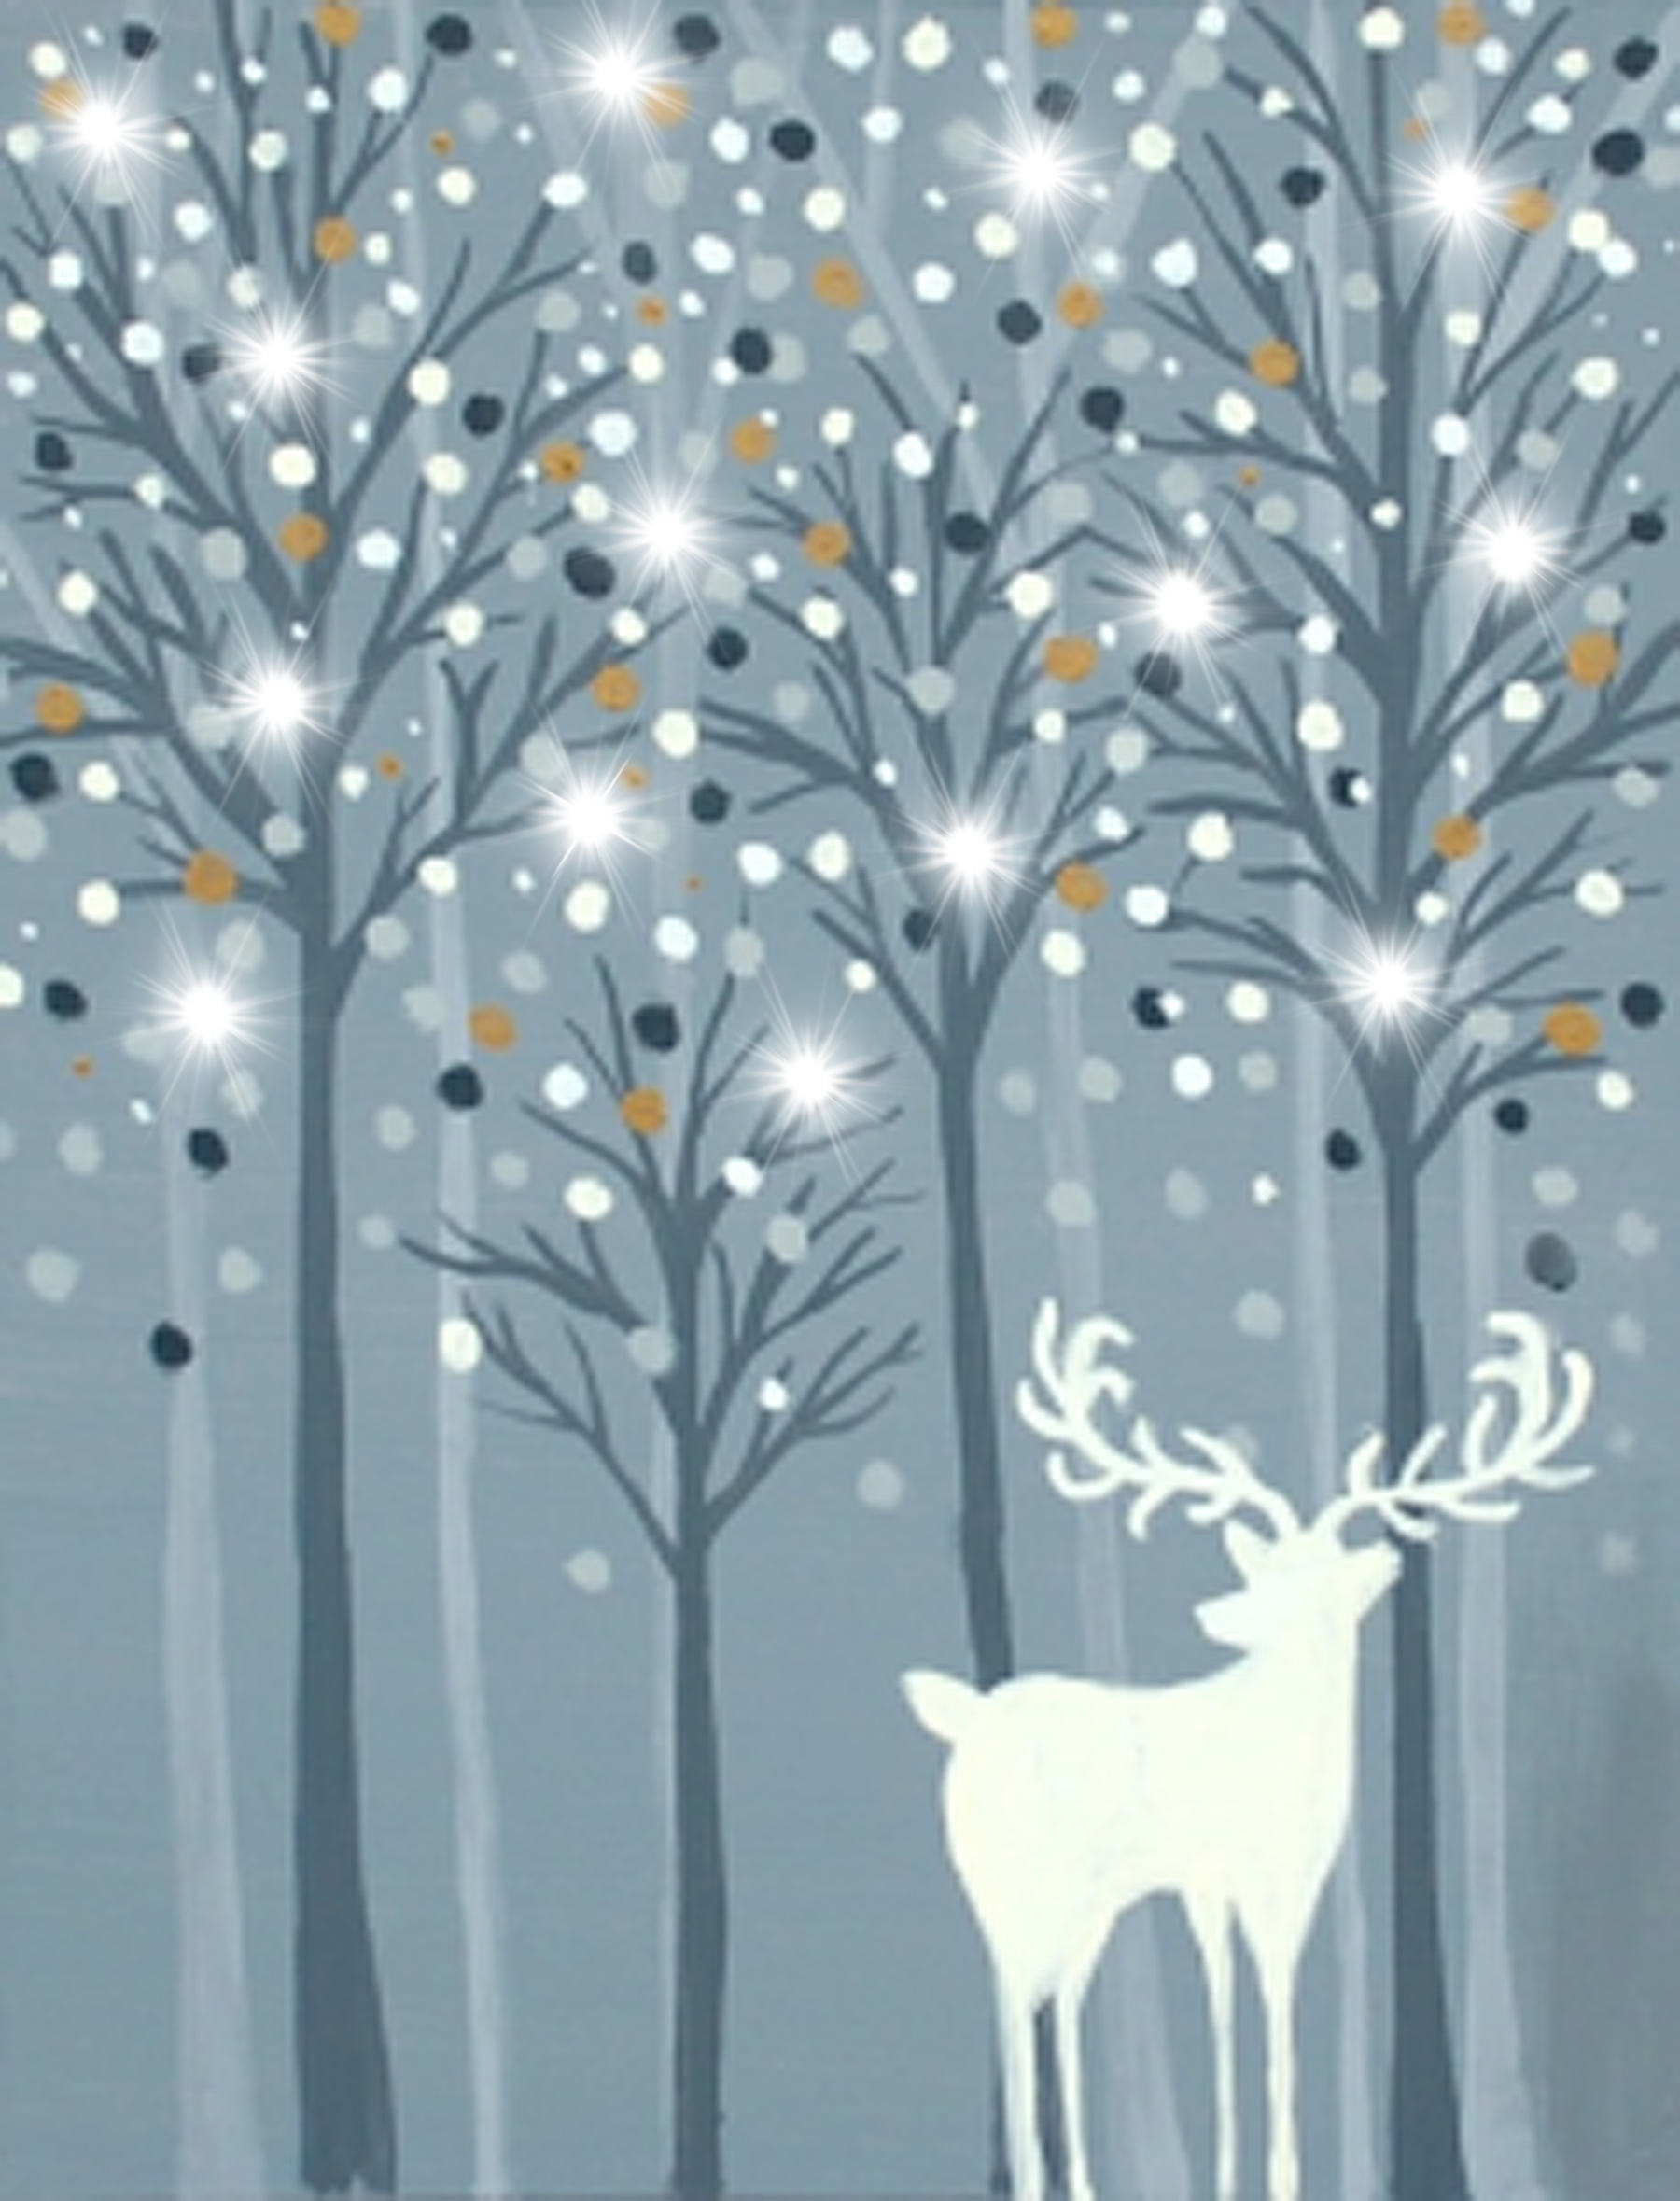 Easy Winter Kids Crafts That Anyone Can Make: Paint And Sip In Buffalo-Amherst